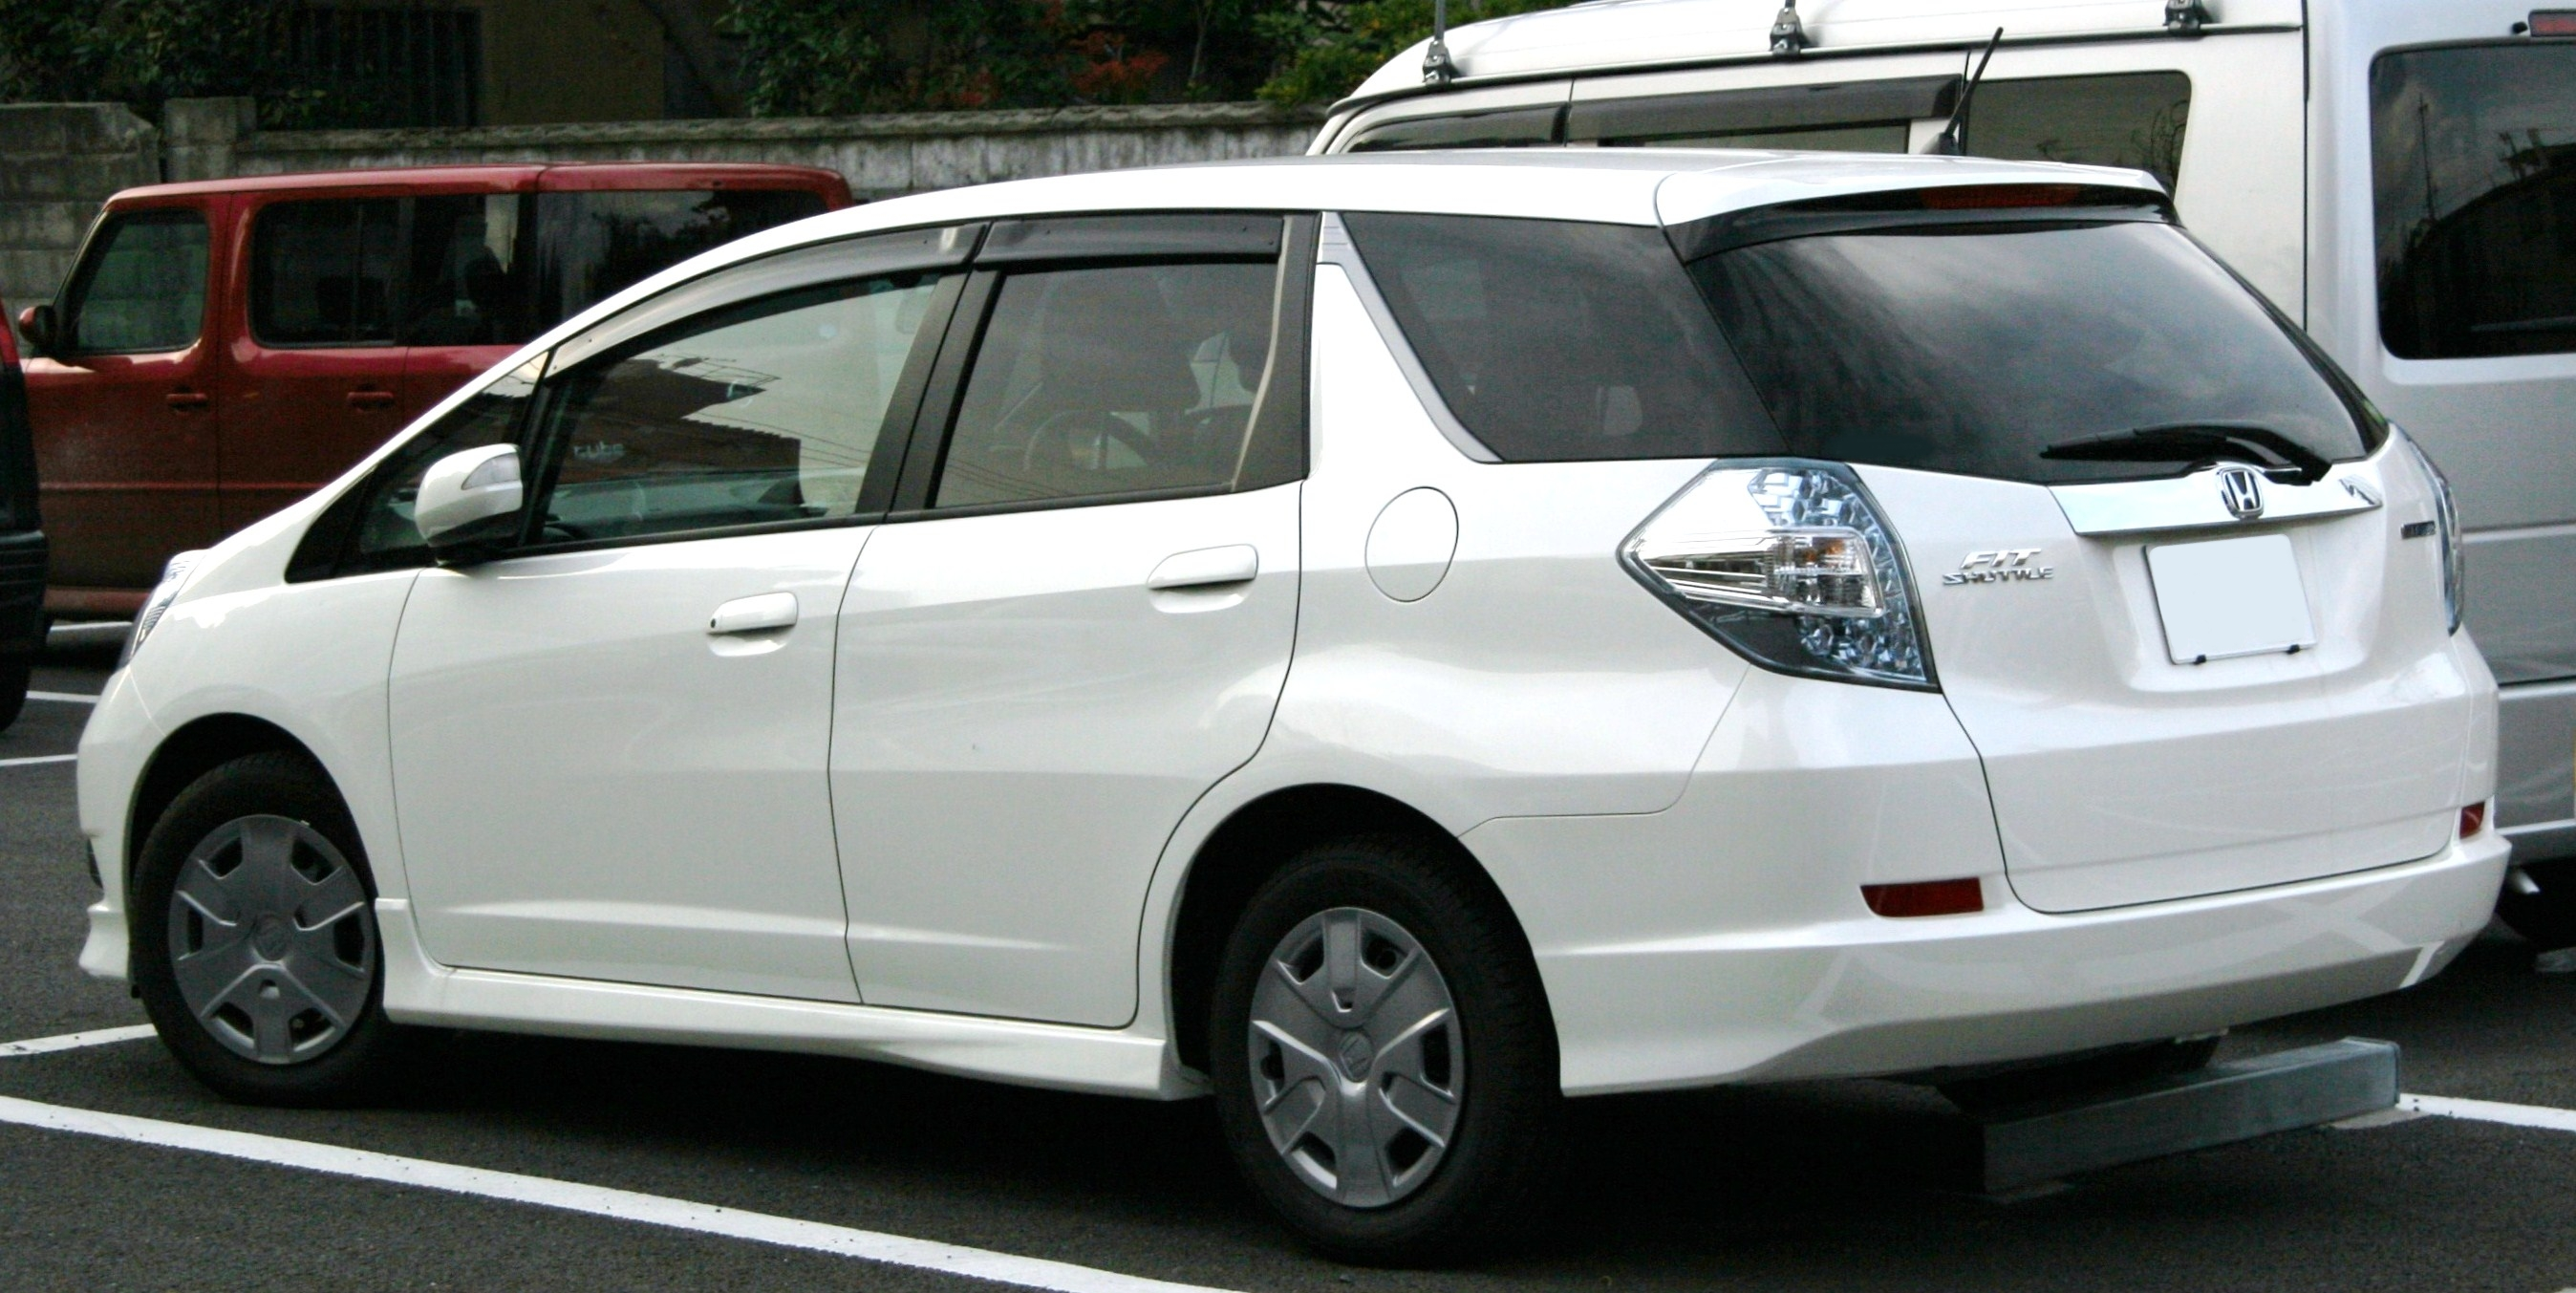 History of Honda models: Shuttle, Civic Shuttle, Fit Shuttle